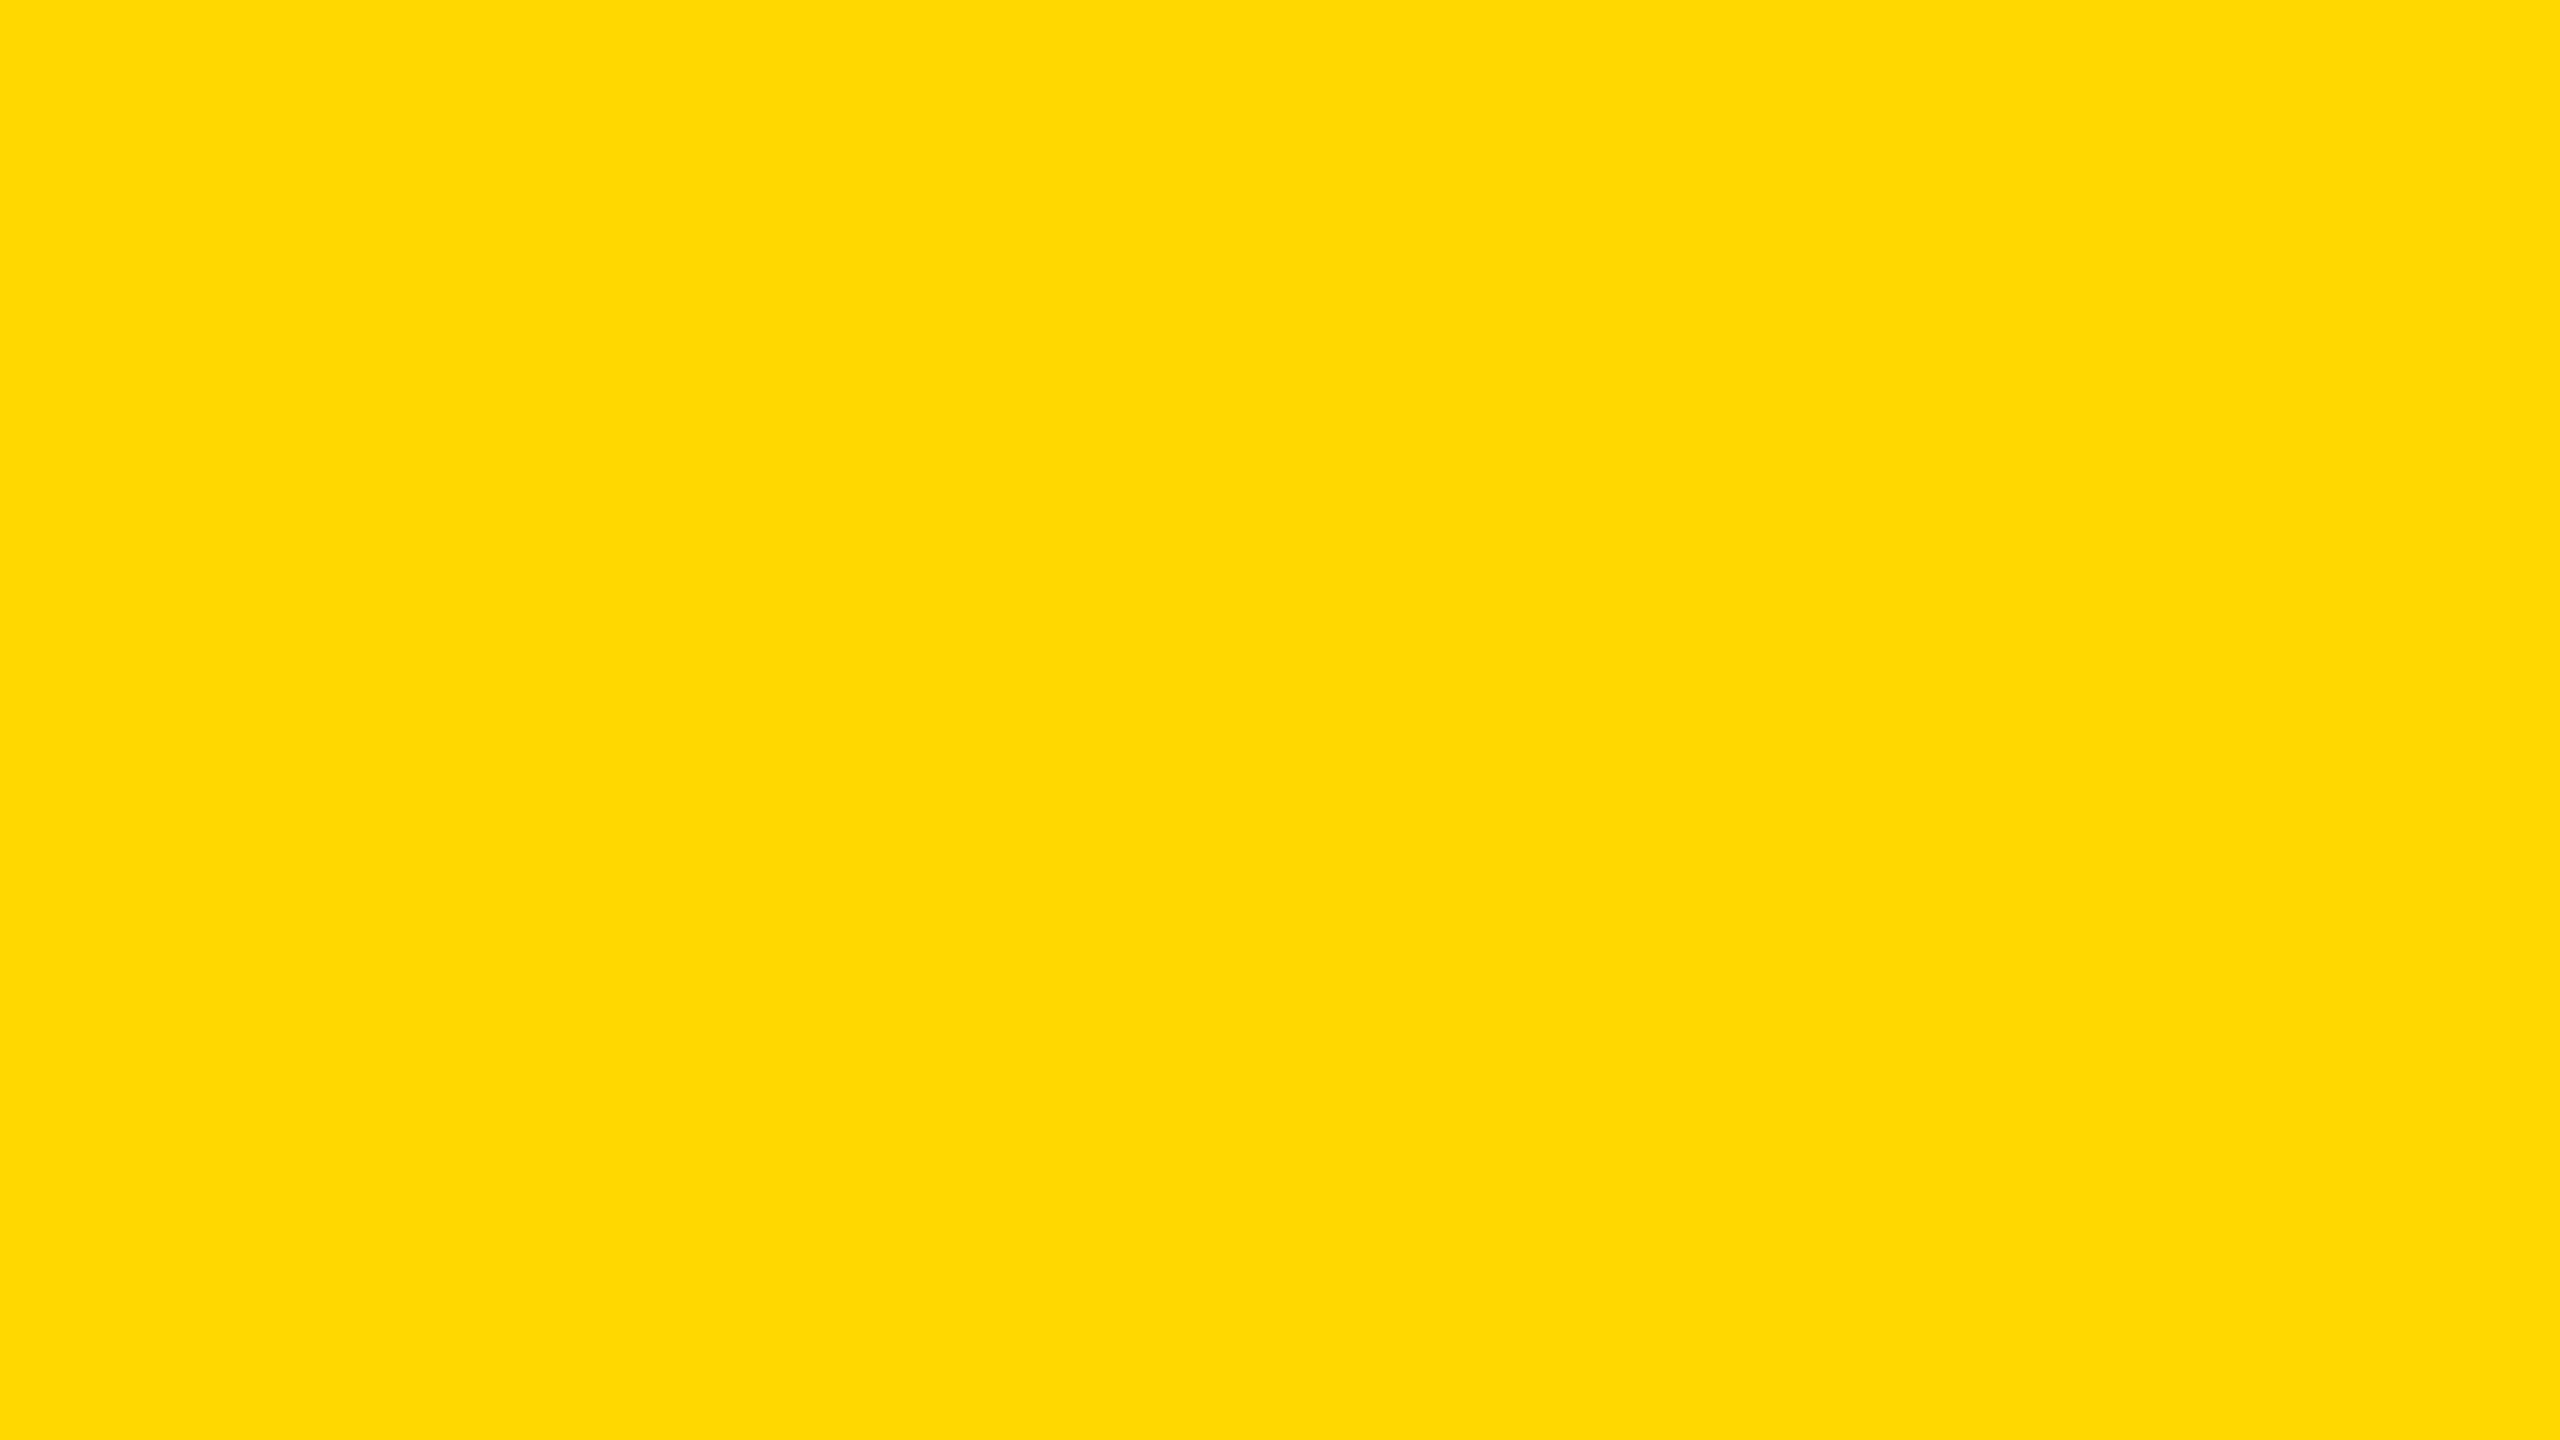 Yellow Awesome Background Hd 6537 Wallpaper Walldiskpaper